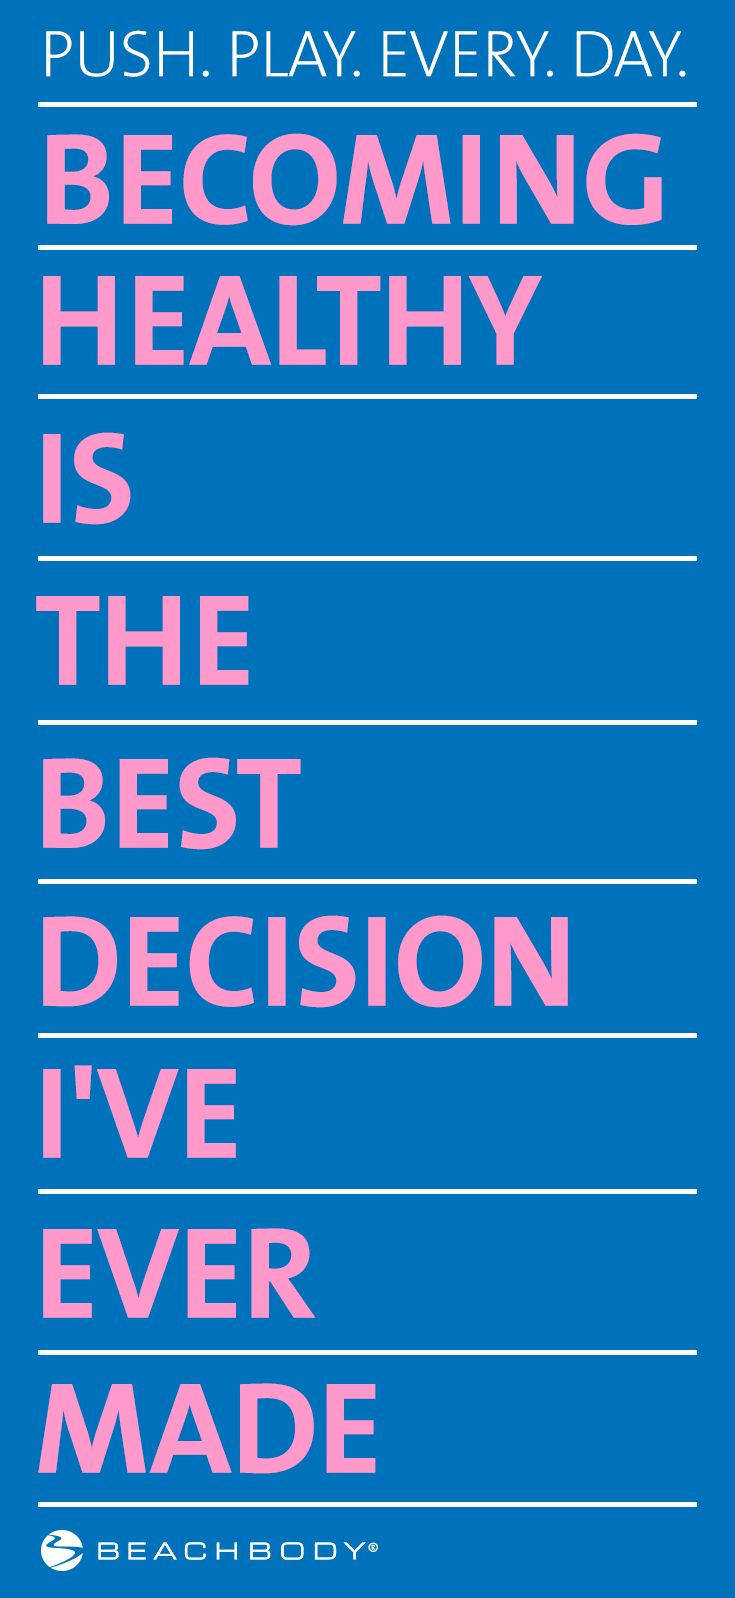 Make a decision that's right for you!  Come see me on facebook, I can help!    https://m.facebook.com/LisaDillonBalancingFitnessAndFamily